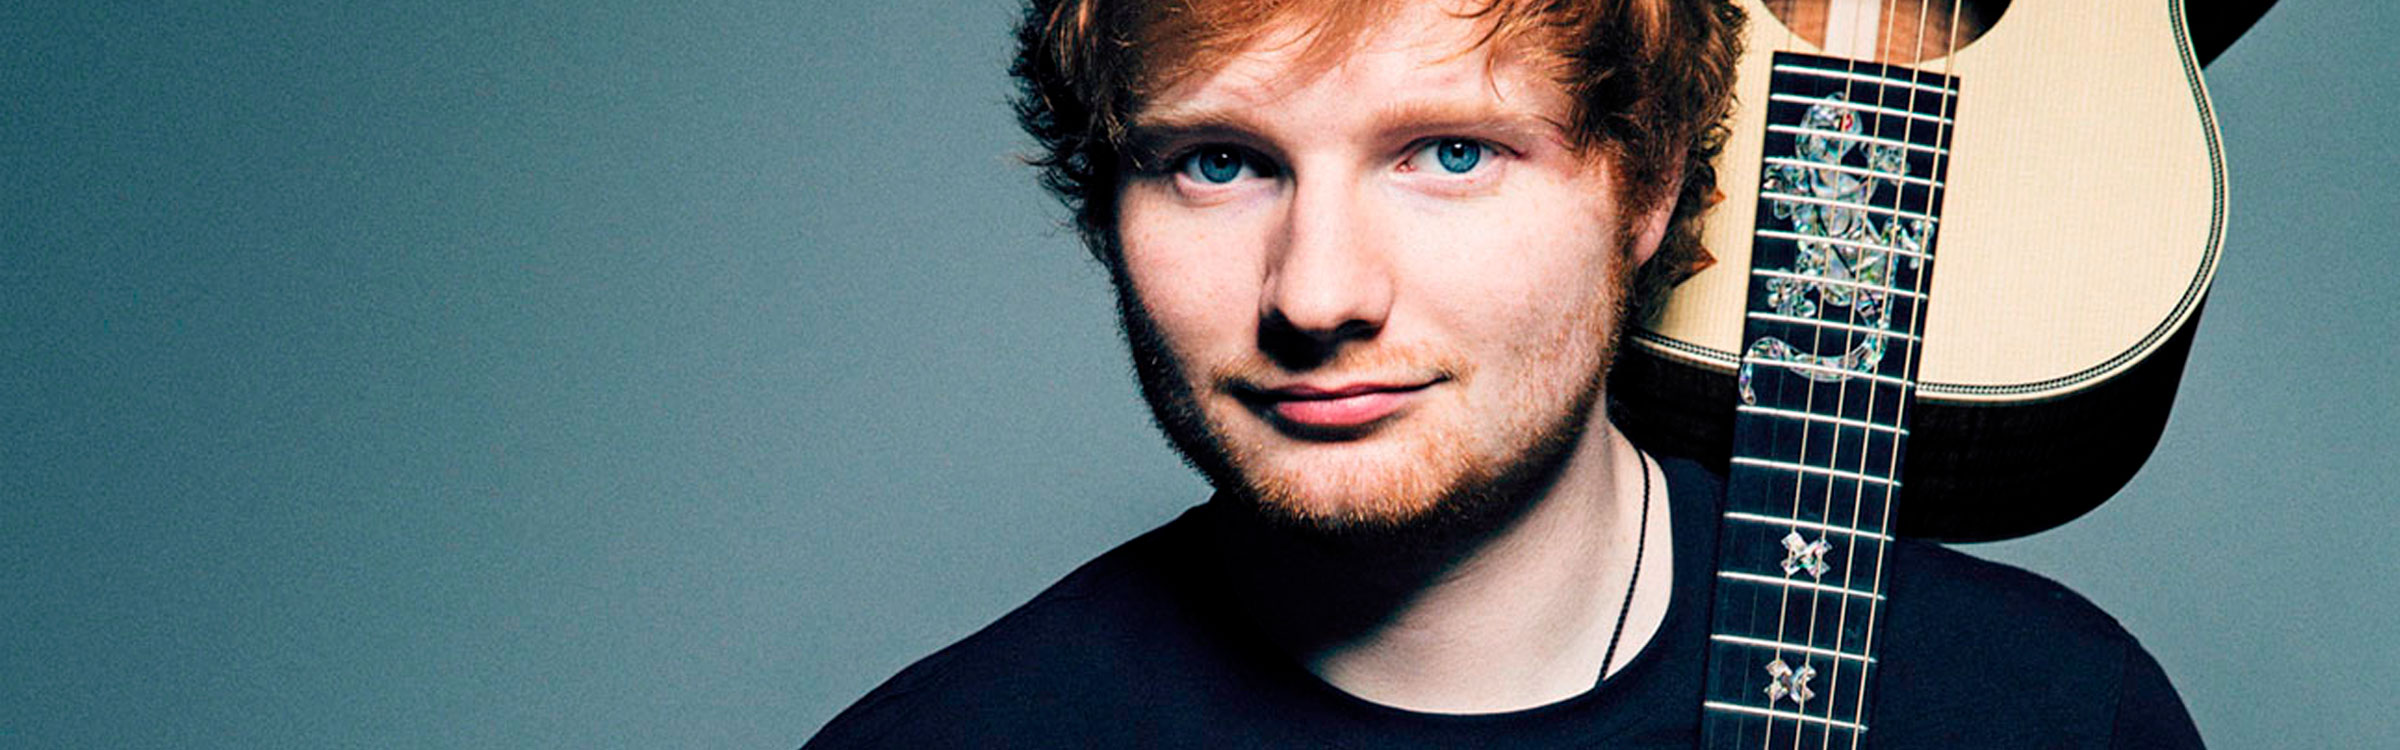 Ed spotify header